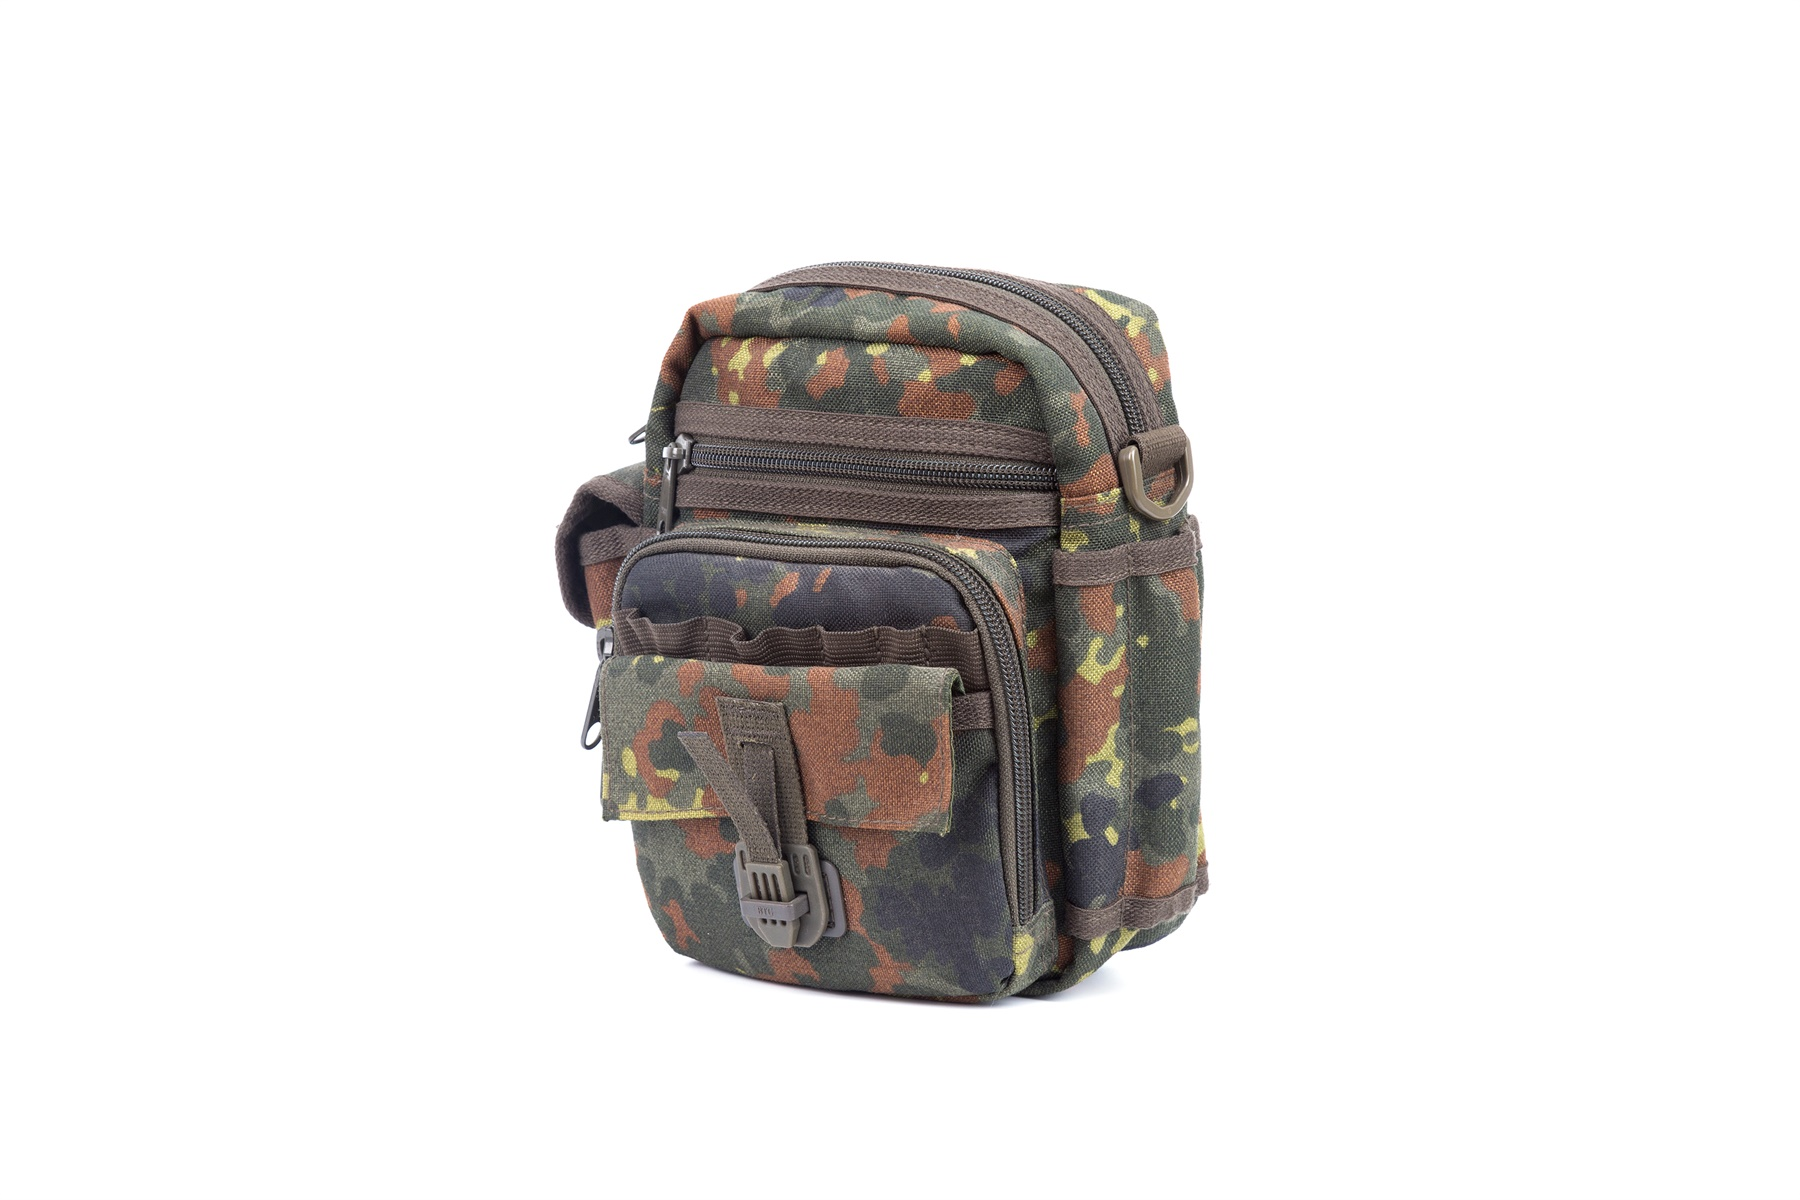 GF bags-Professional Military Gear Bags and Tactical Pouch Bag From GF Bags-5